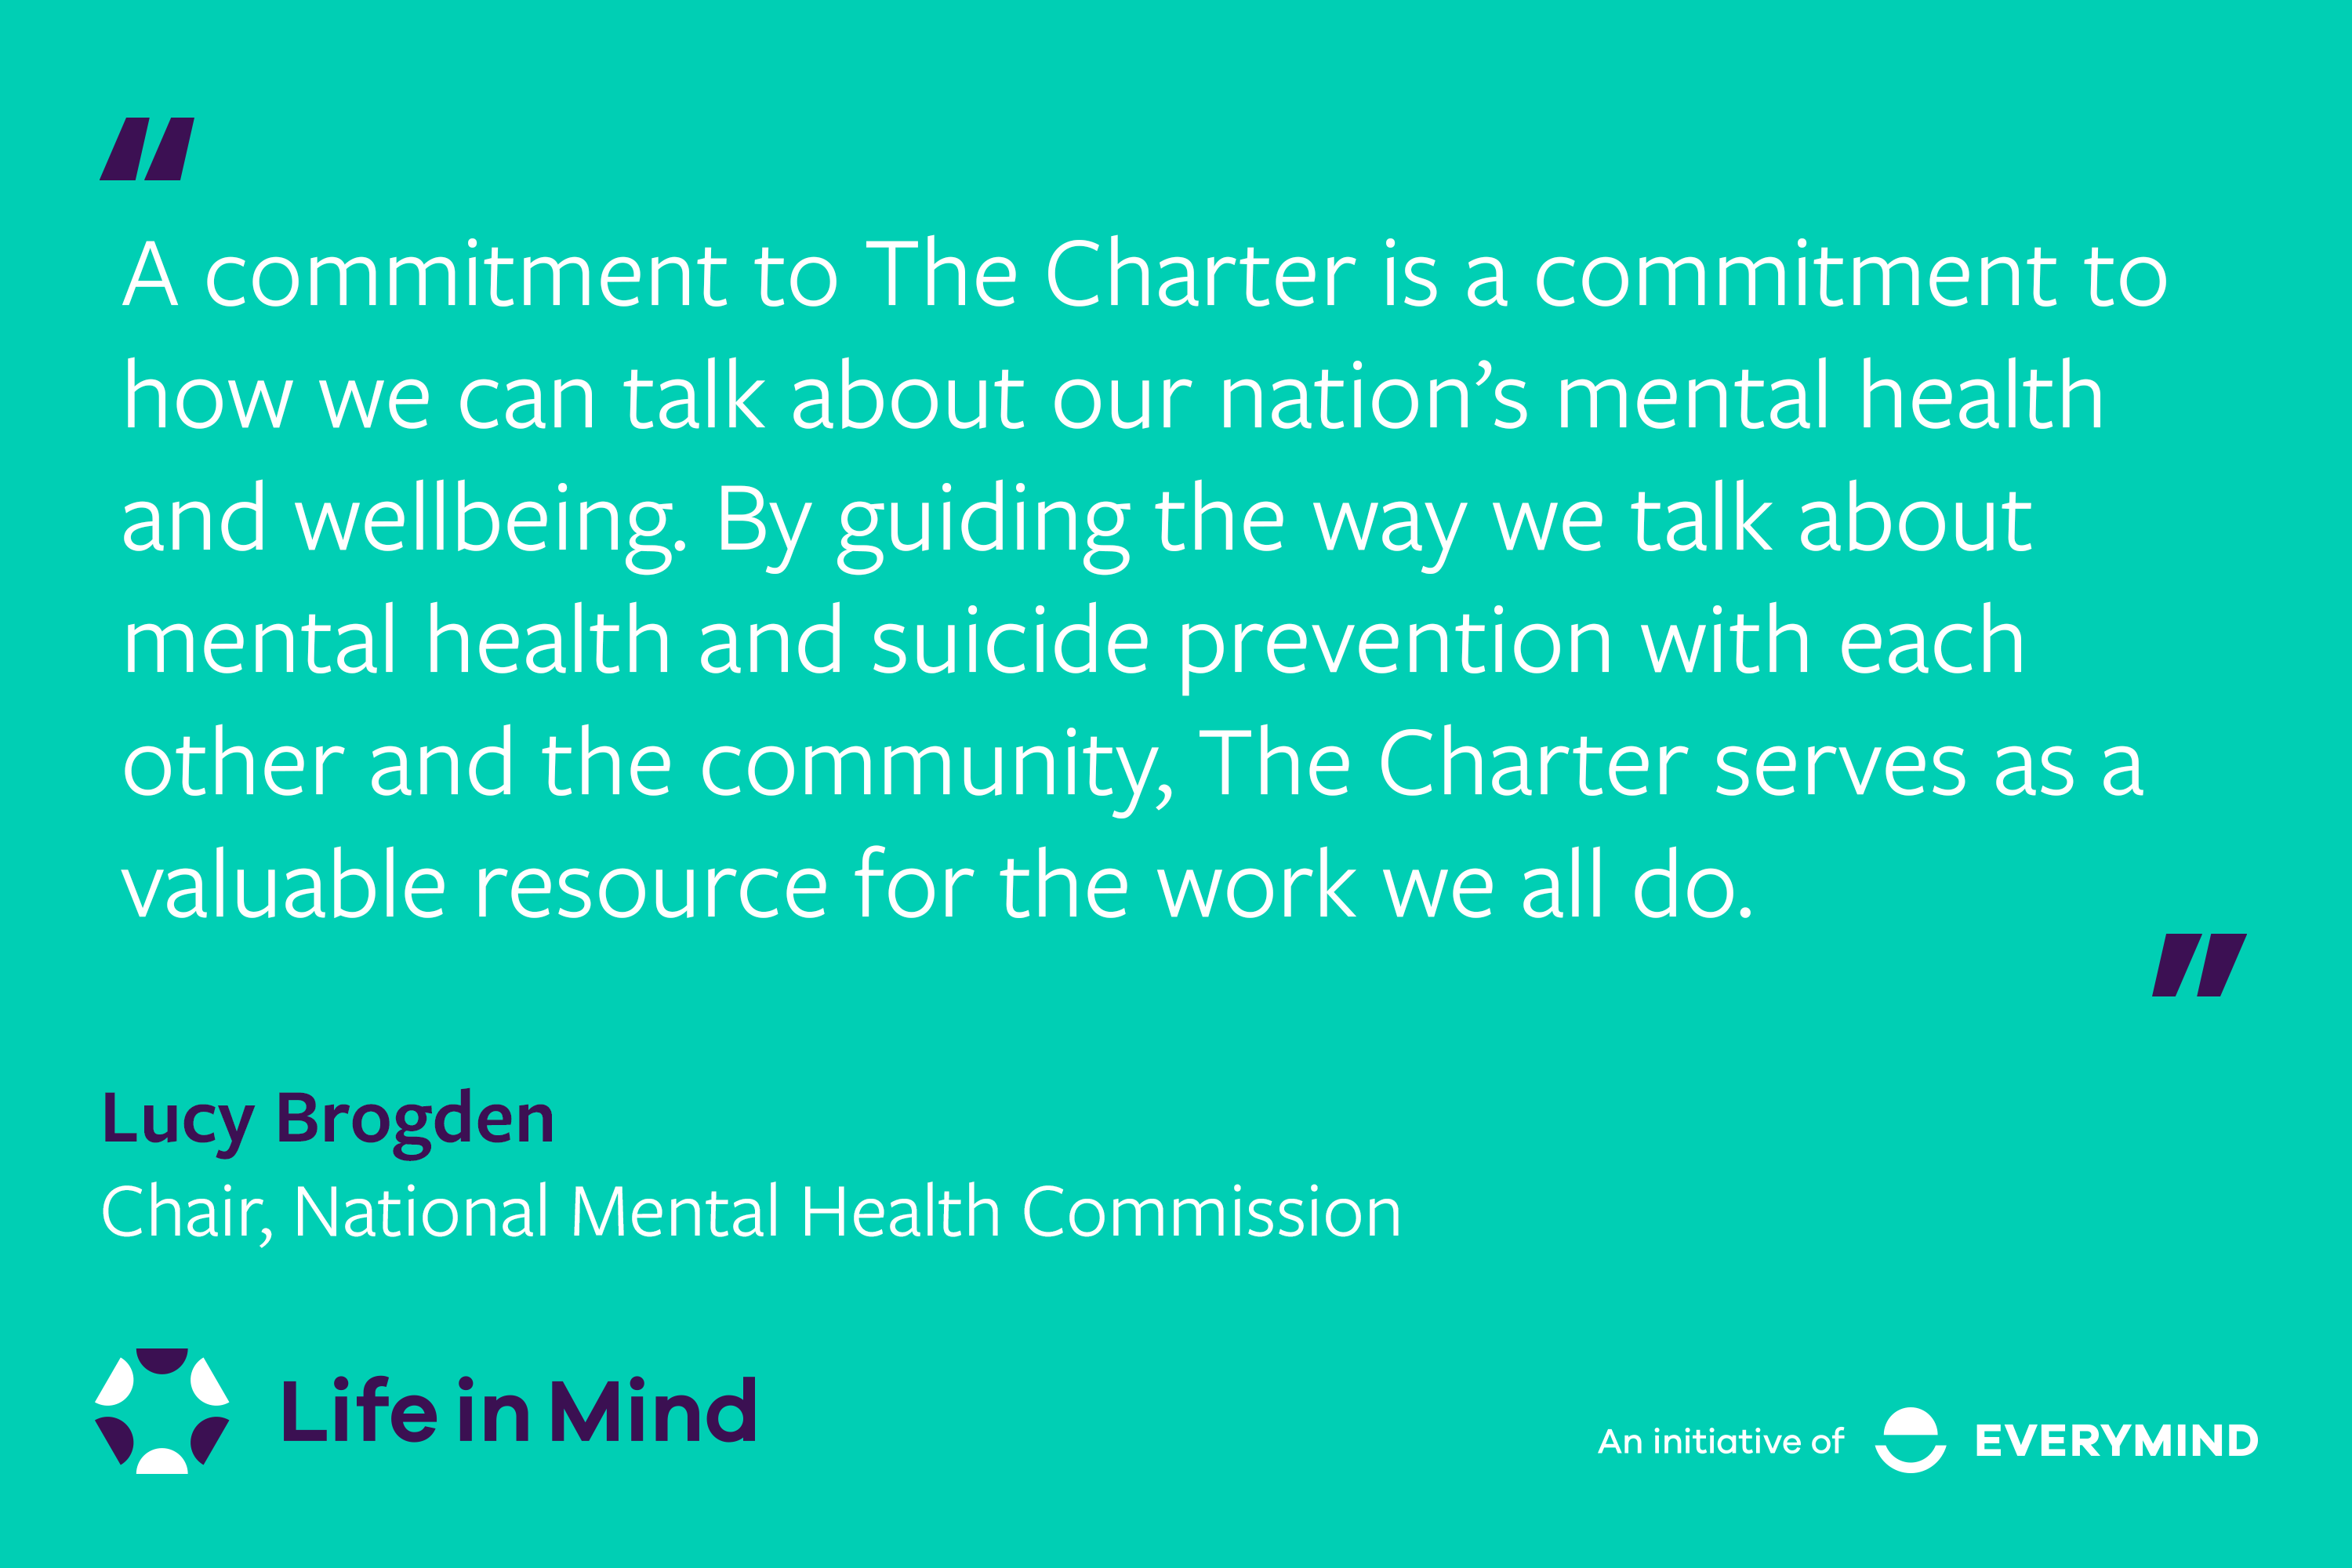 It's time to change the way we talk about mental health in the workplace